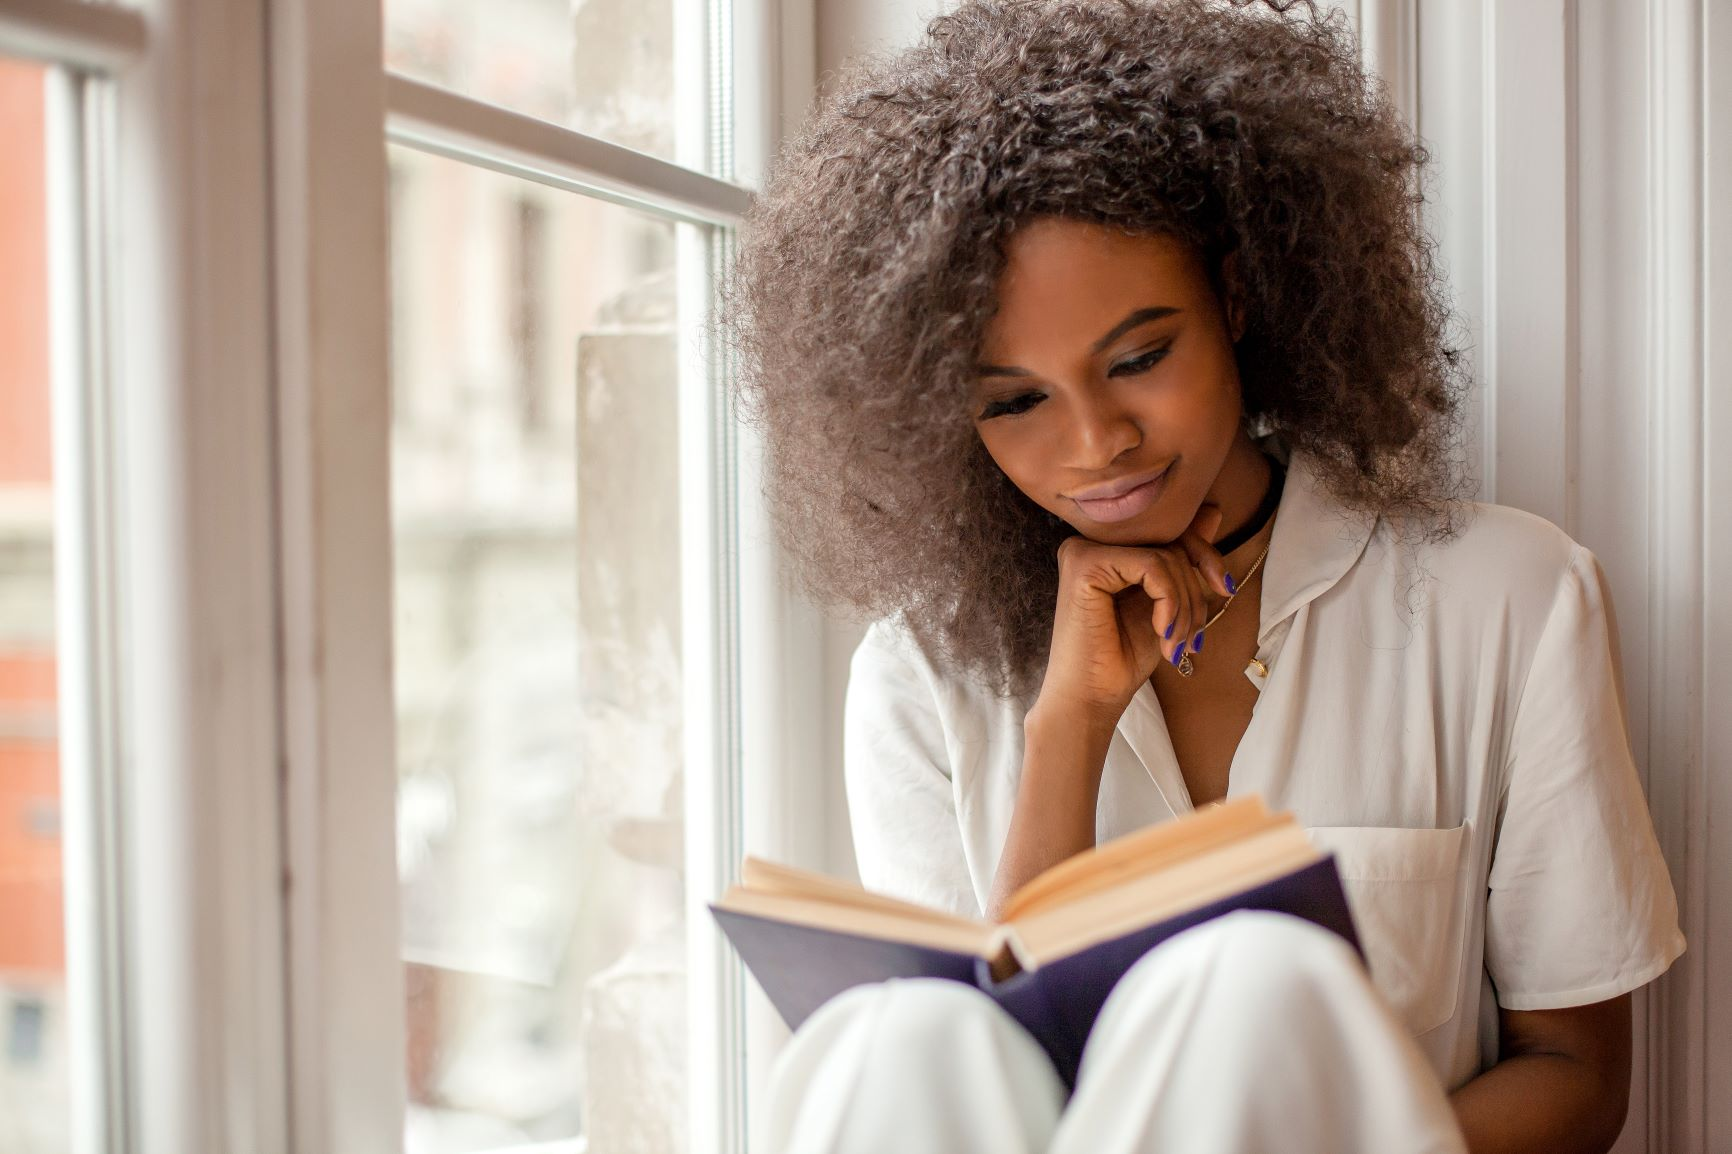 won sitting by window reading a book - christiana de apartments